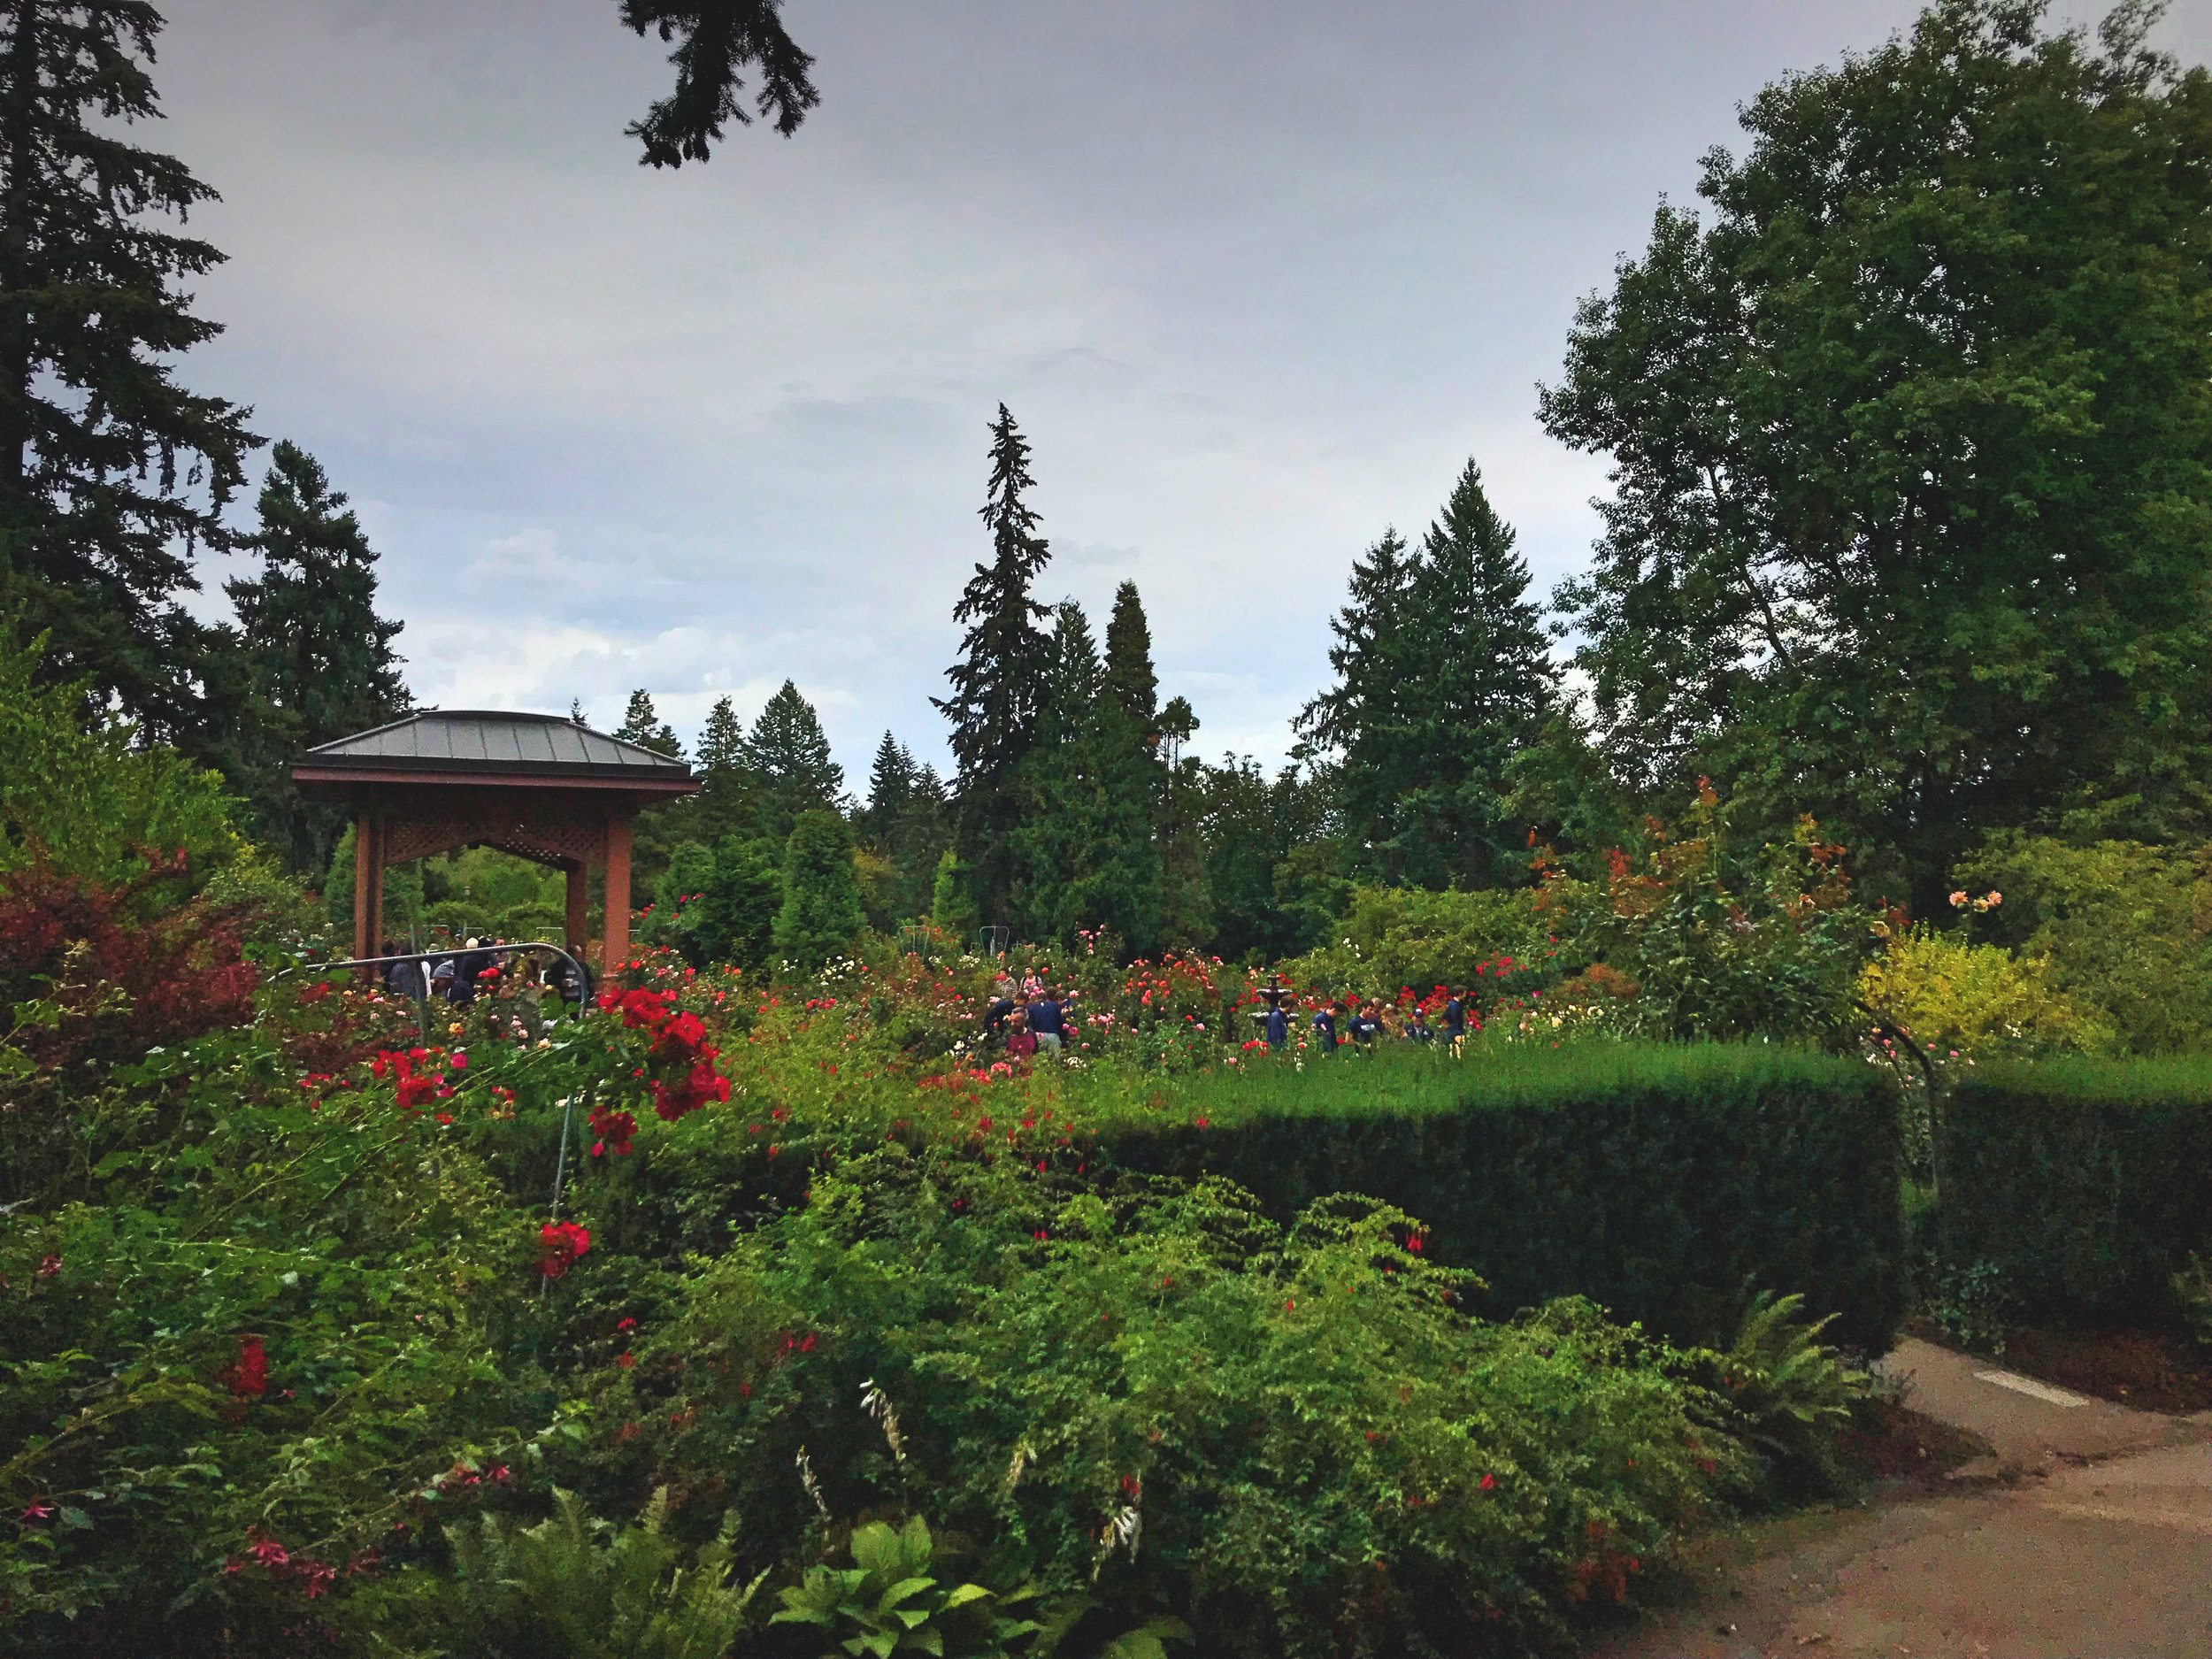 There are small pagodas and gardens within gardens to explore in the rose garden.